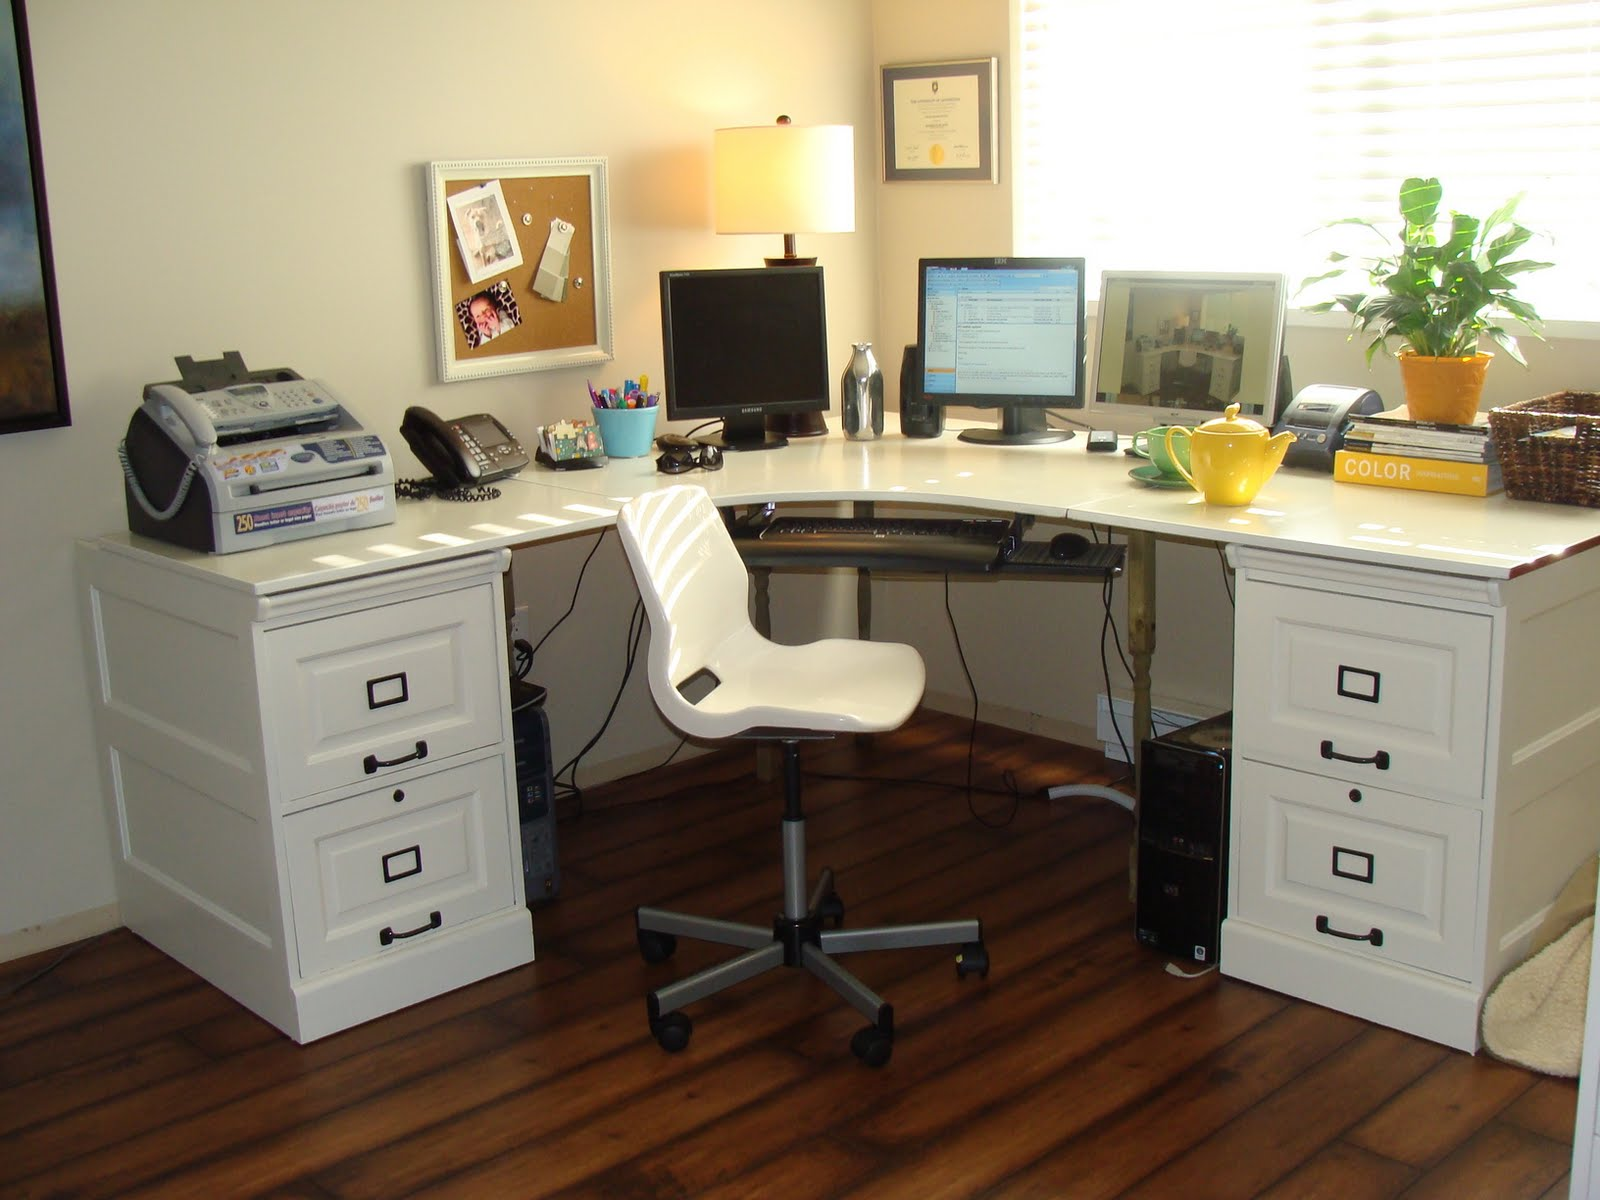 Pottery barn office furniture 2 - Pottery Barn Inspired Desk Transformation